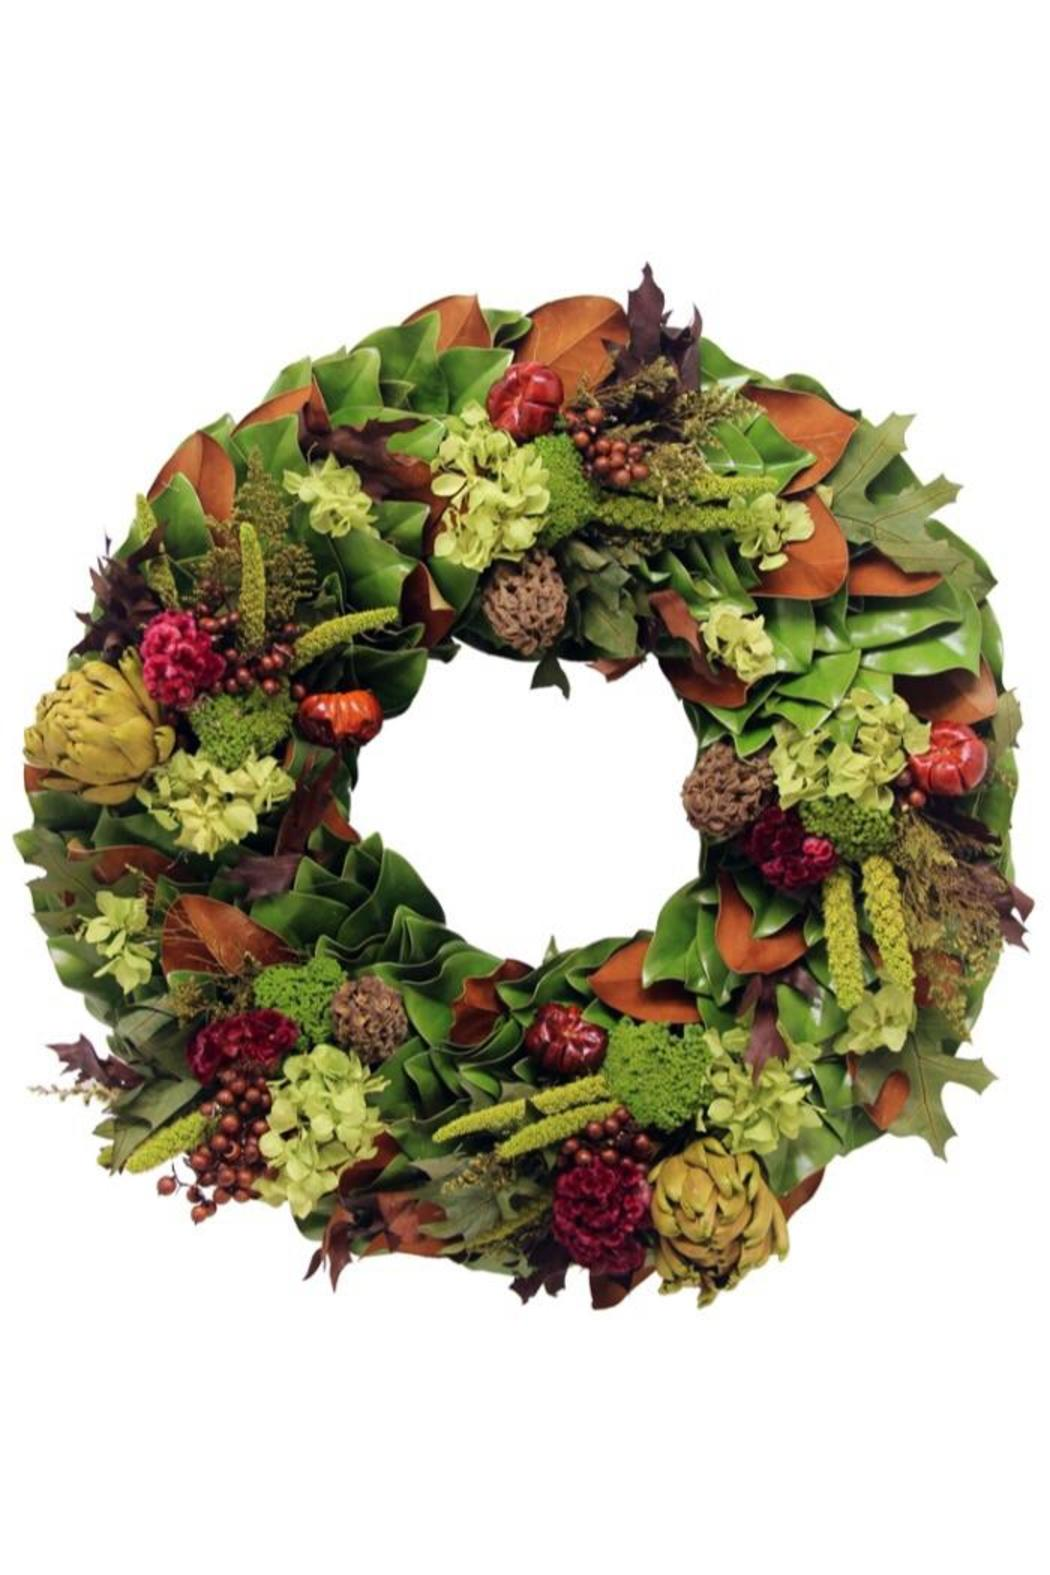 The magnolia company merlot valley wreath from westchester county by the magnolia company merlot valley wreath front cropped image mightylinksfo